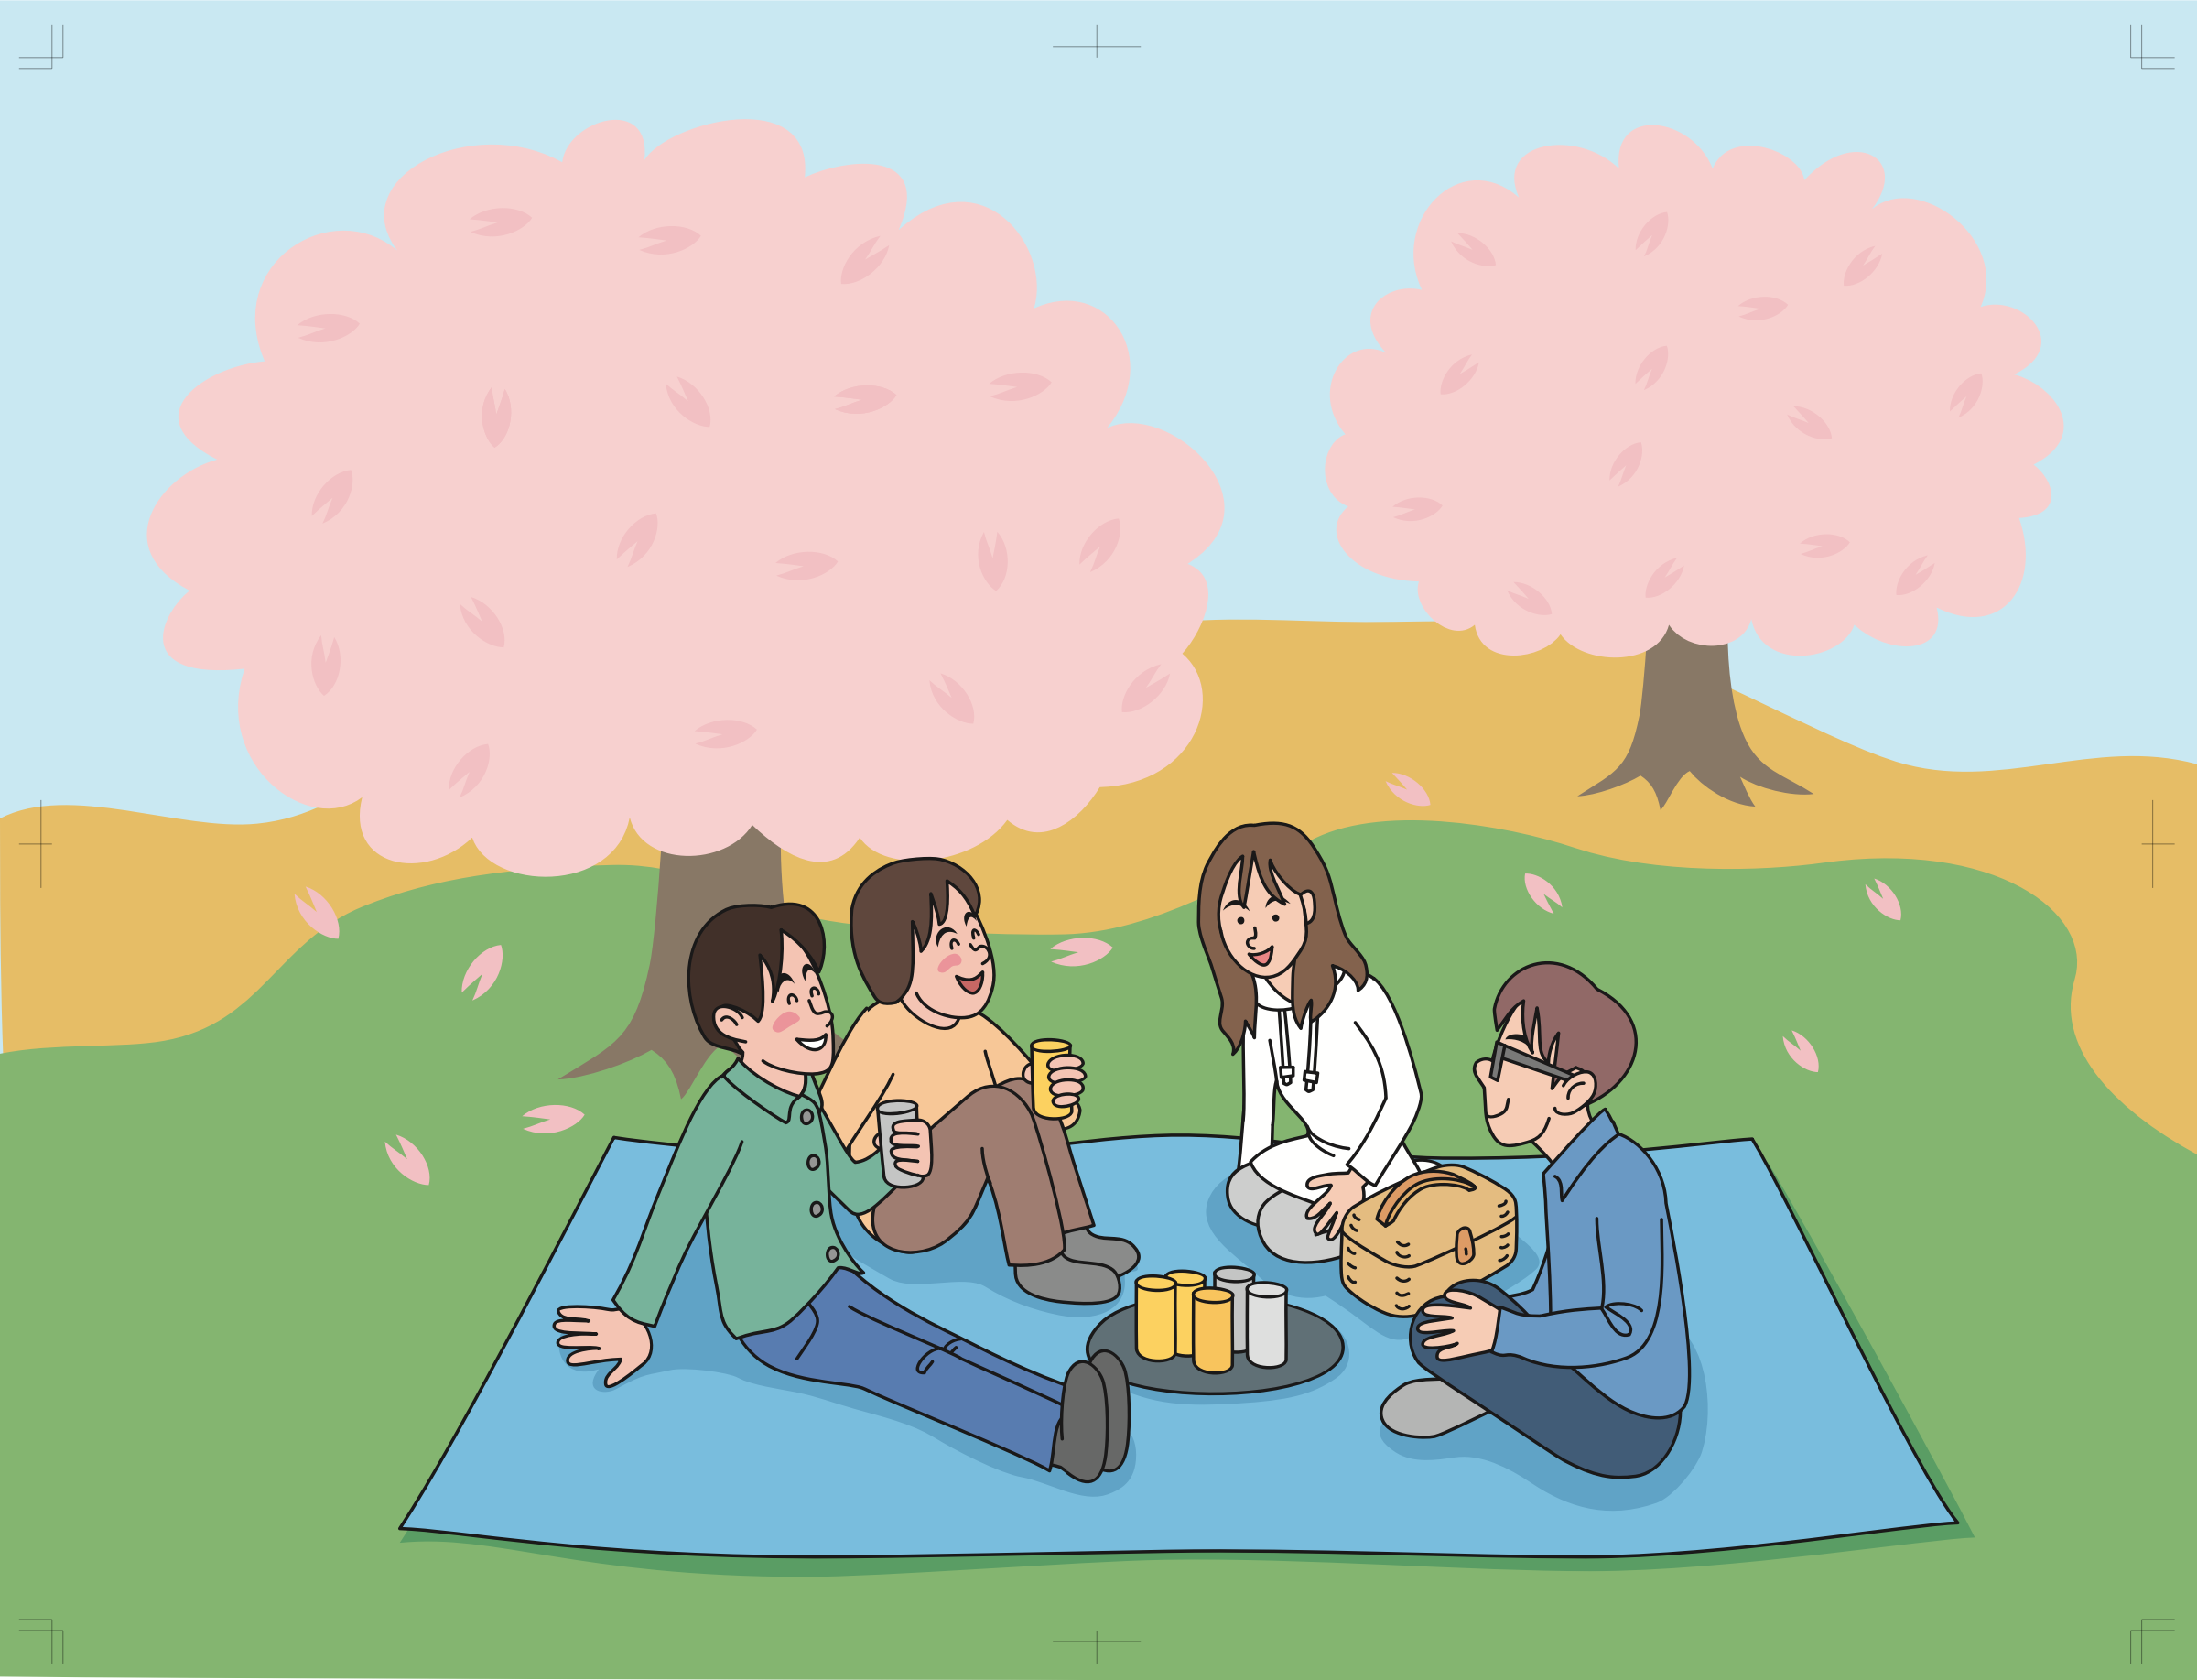 Cherry Blossom Picnic (#1) by oksmith